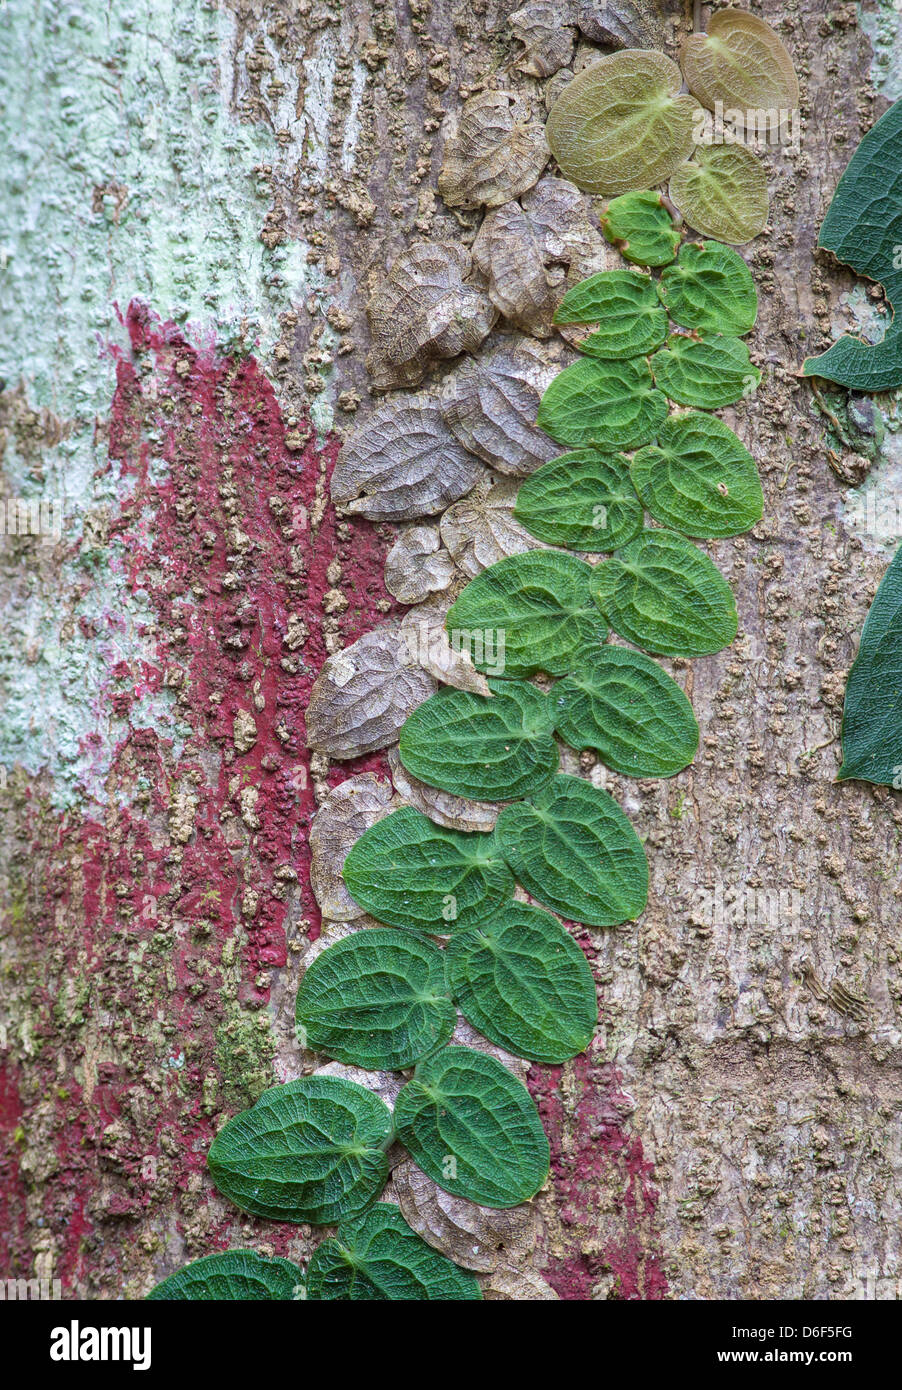 Colourful rain forest tree trunk covered with red and pale green algae and flat leaved creeping vines in various - Stock Image